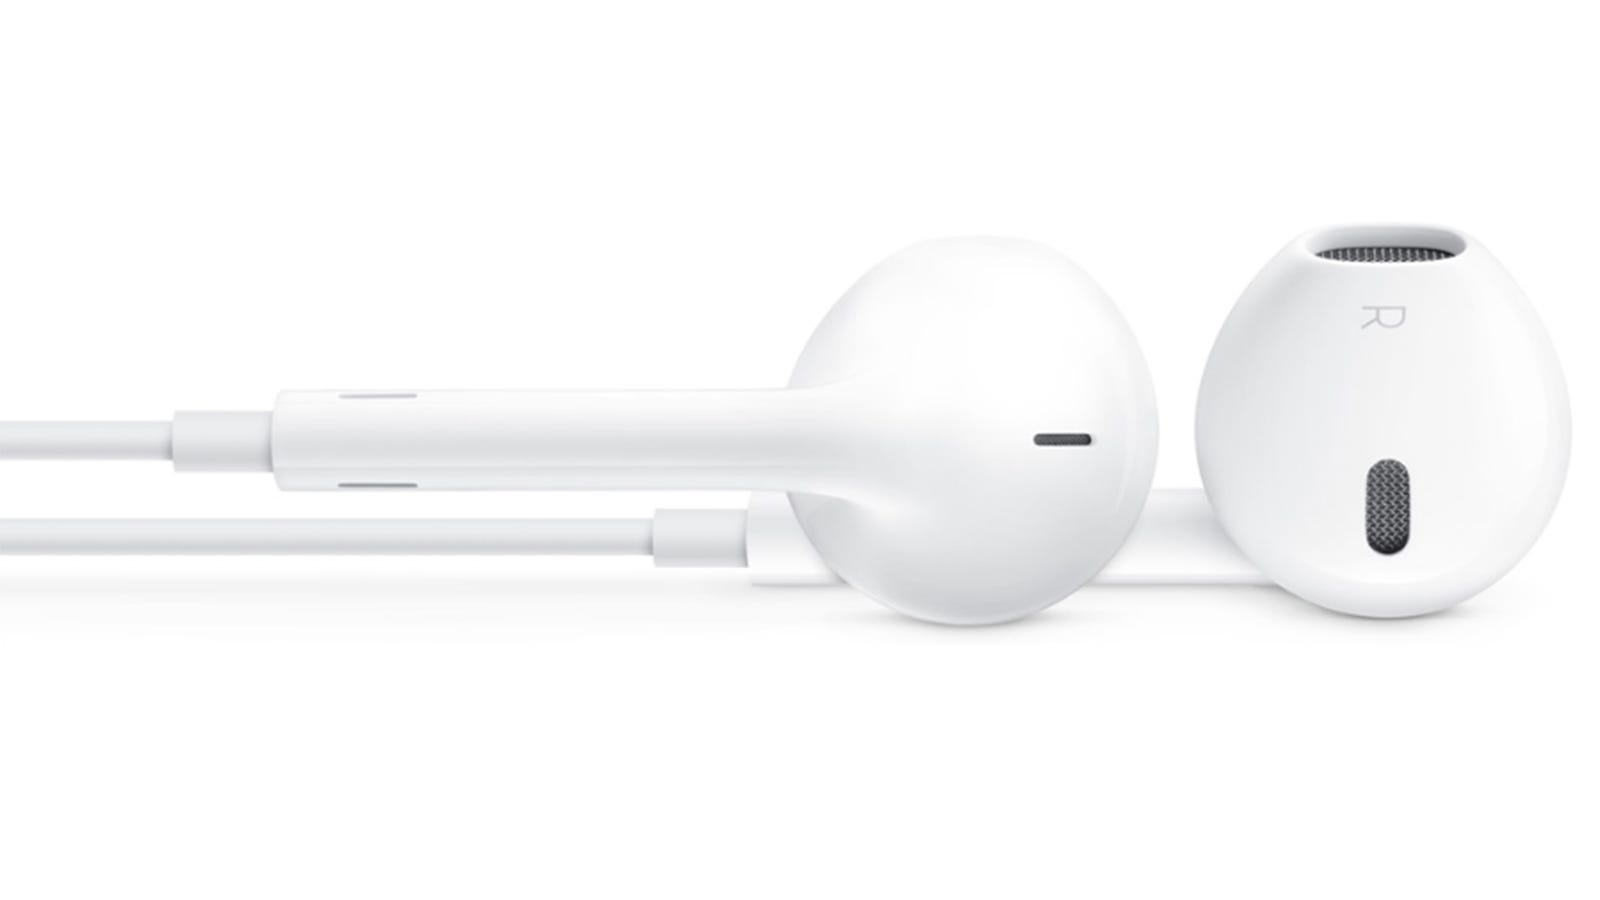 skullcandy inkd earbuds 2.0 - Apple's Rolling Out New Headphones That Might Not Be Crap